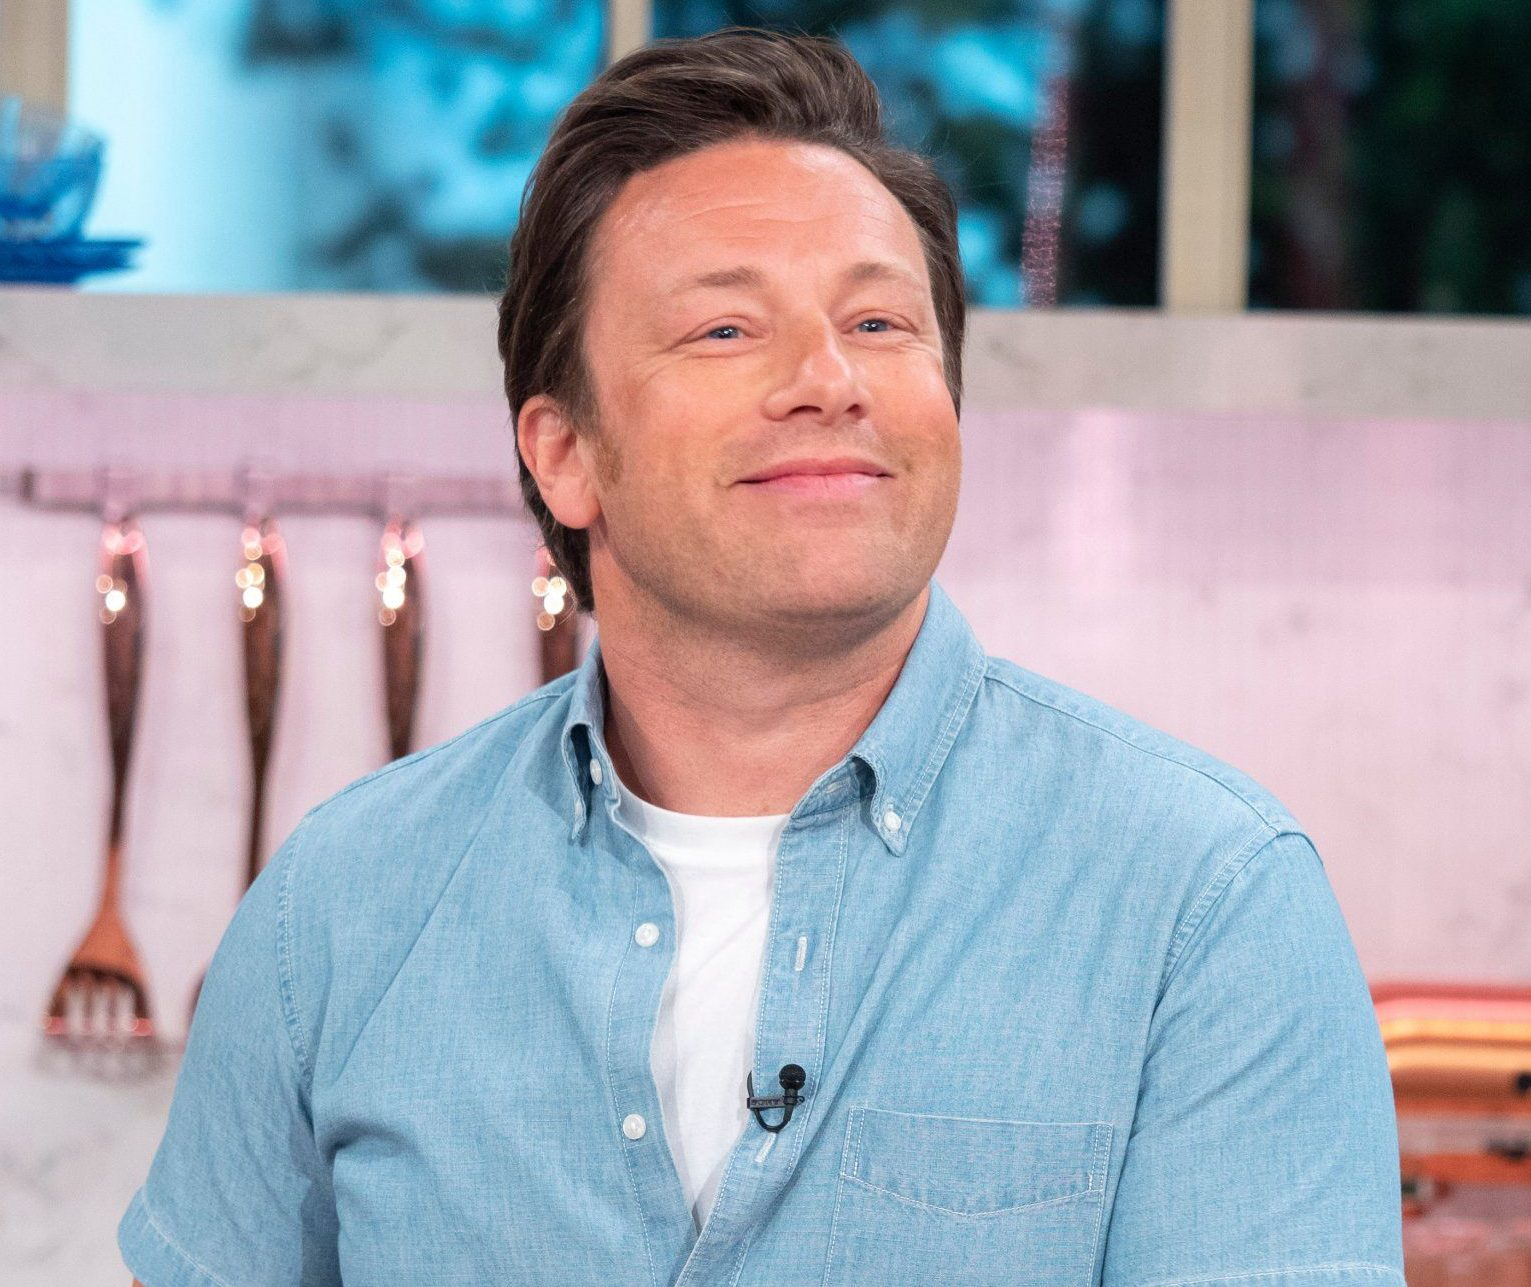 Jamie Oliver has 'no more money' to keep restaurant business afloat after 'challenging' 18 months